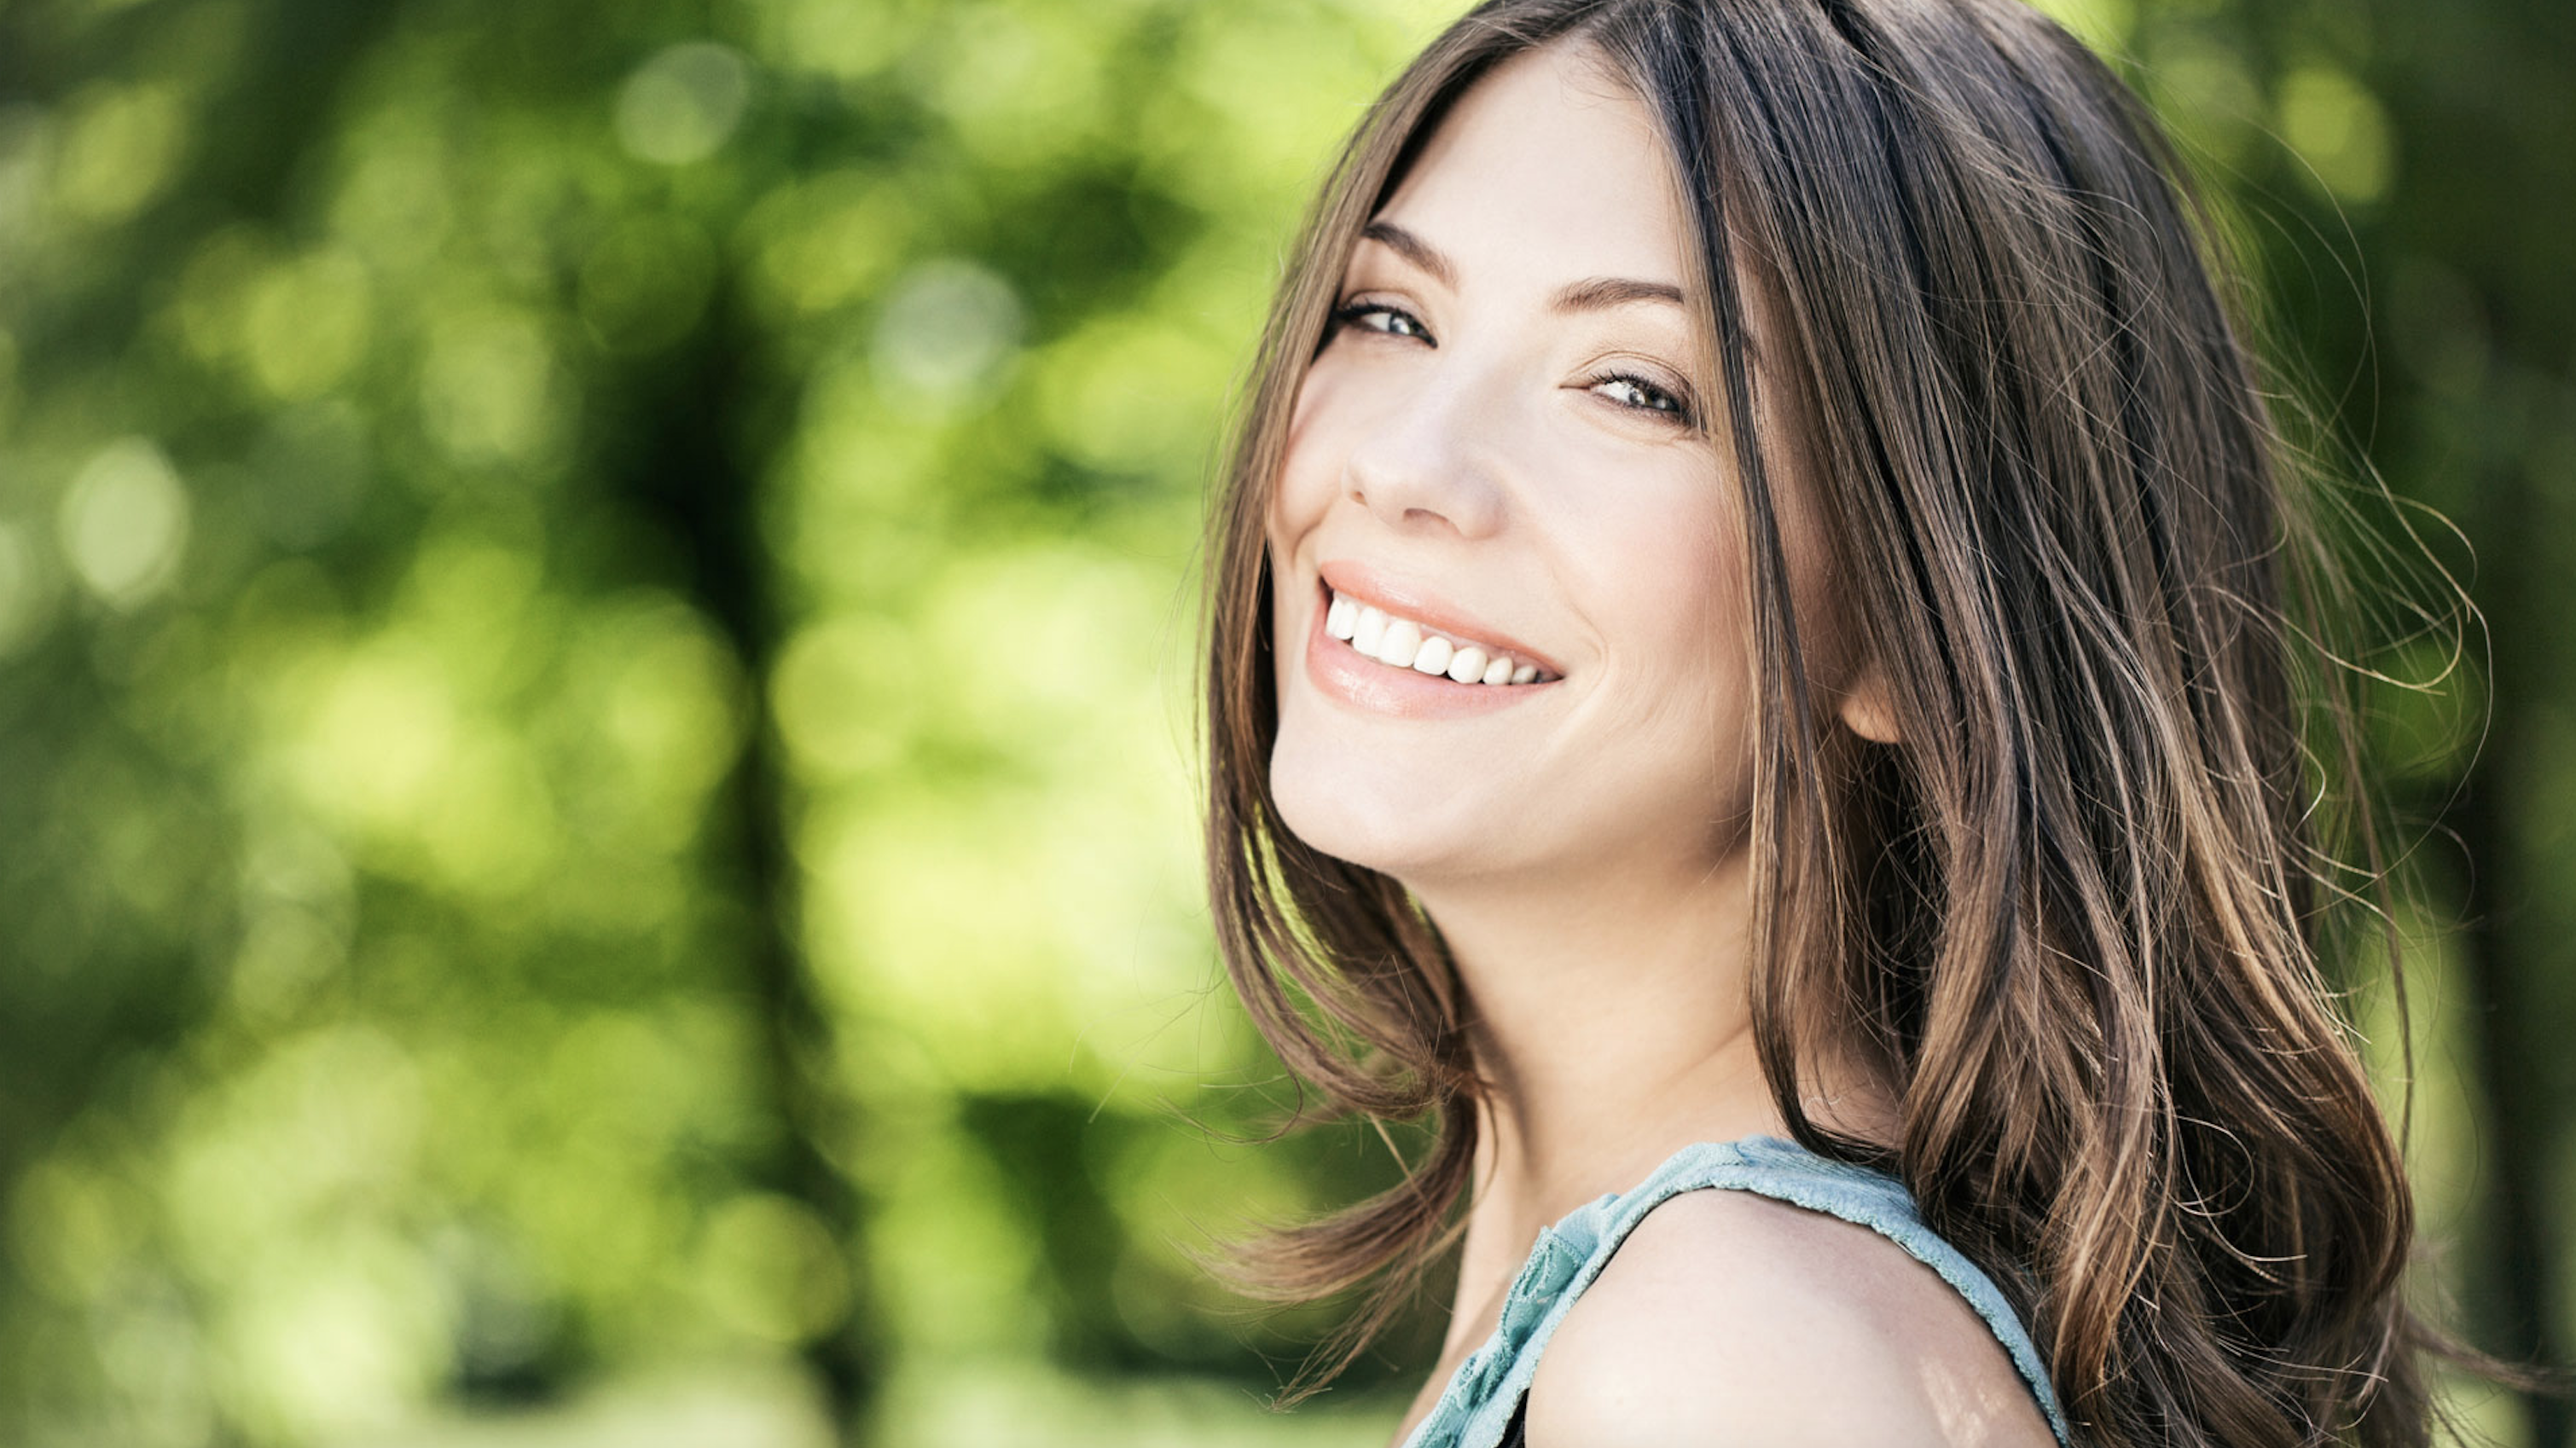 smiling woman images - HD 1920×1080